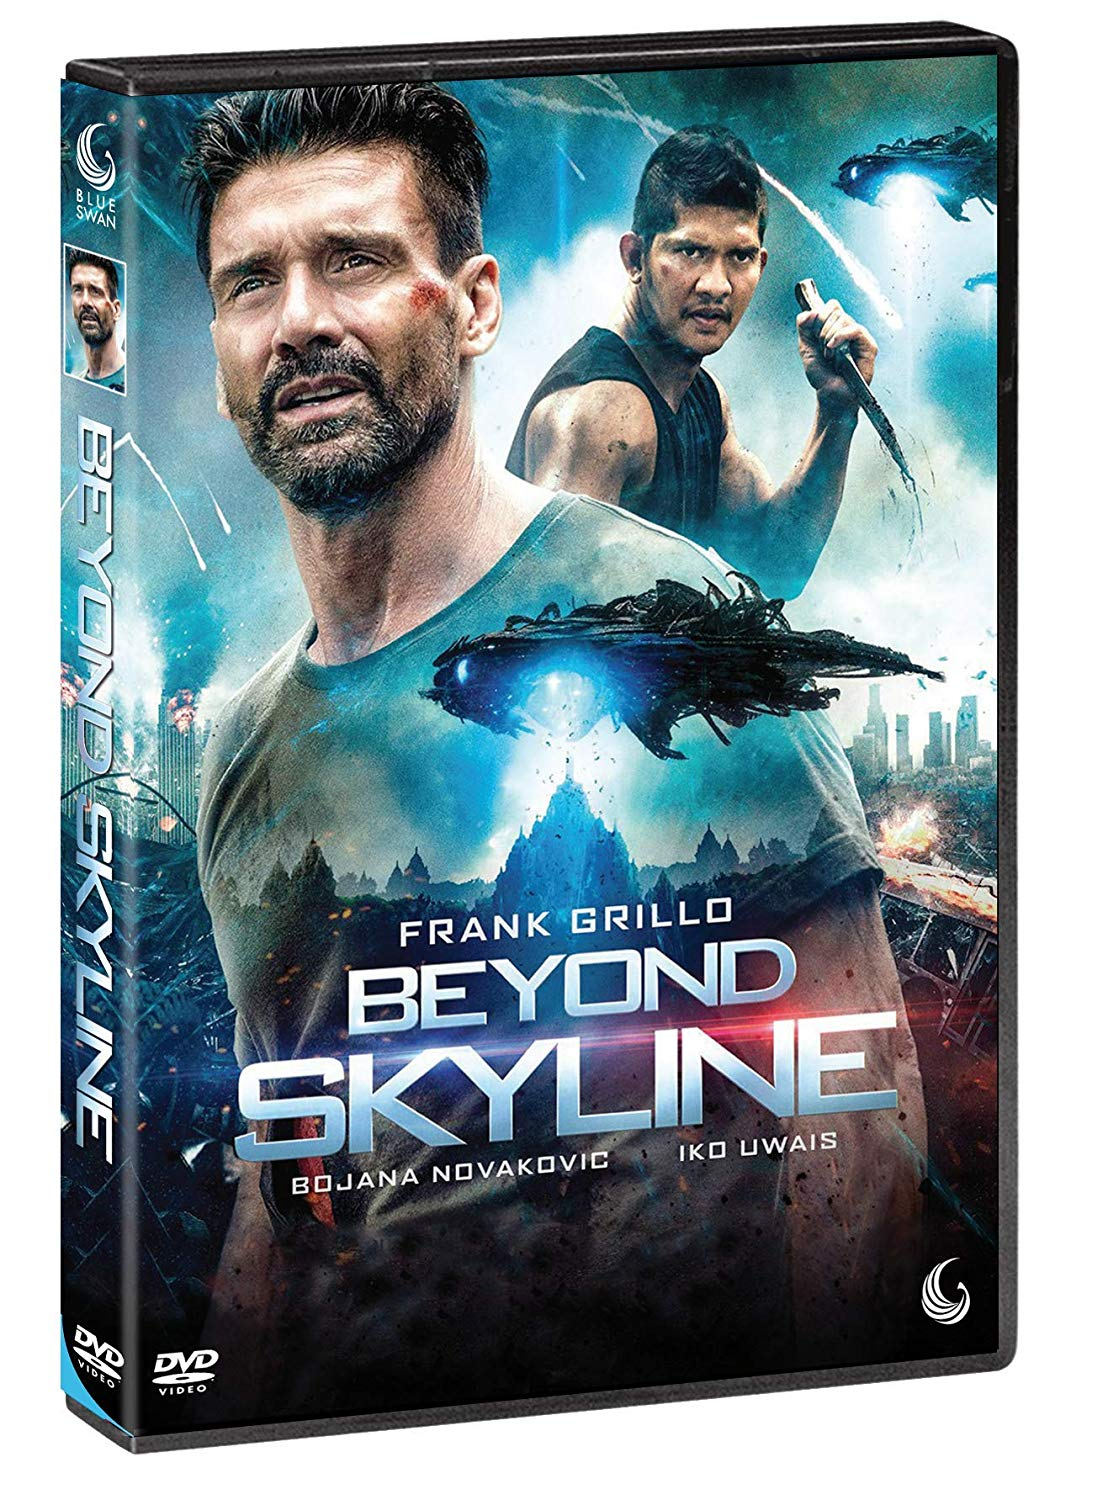 BEYOND SKYLINE (DVD)